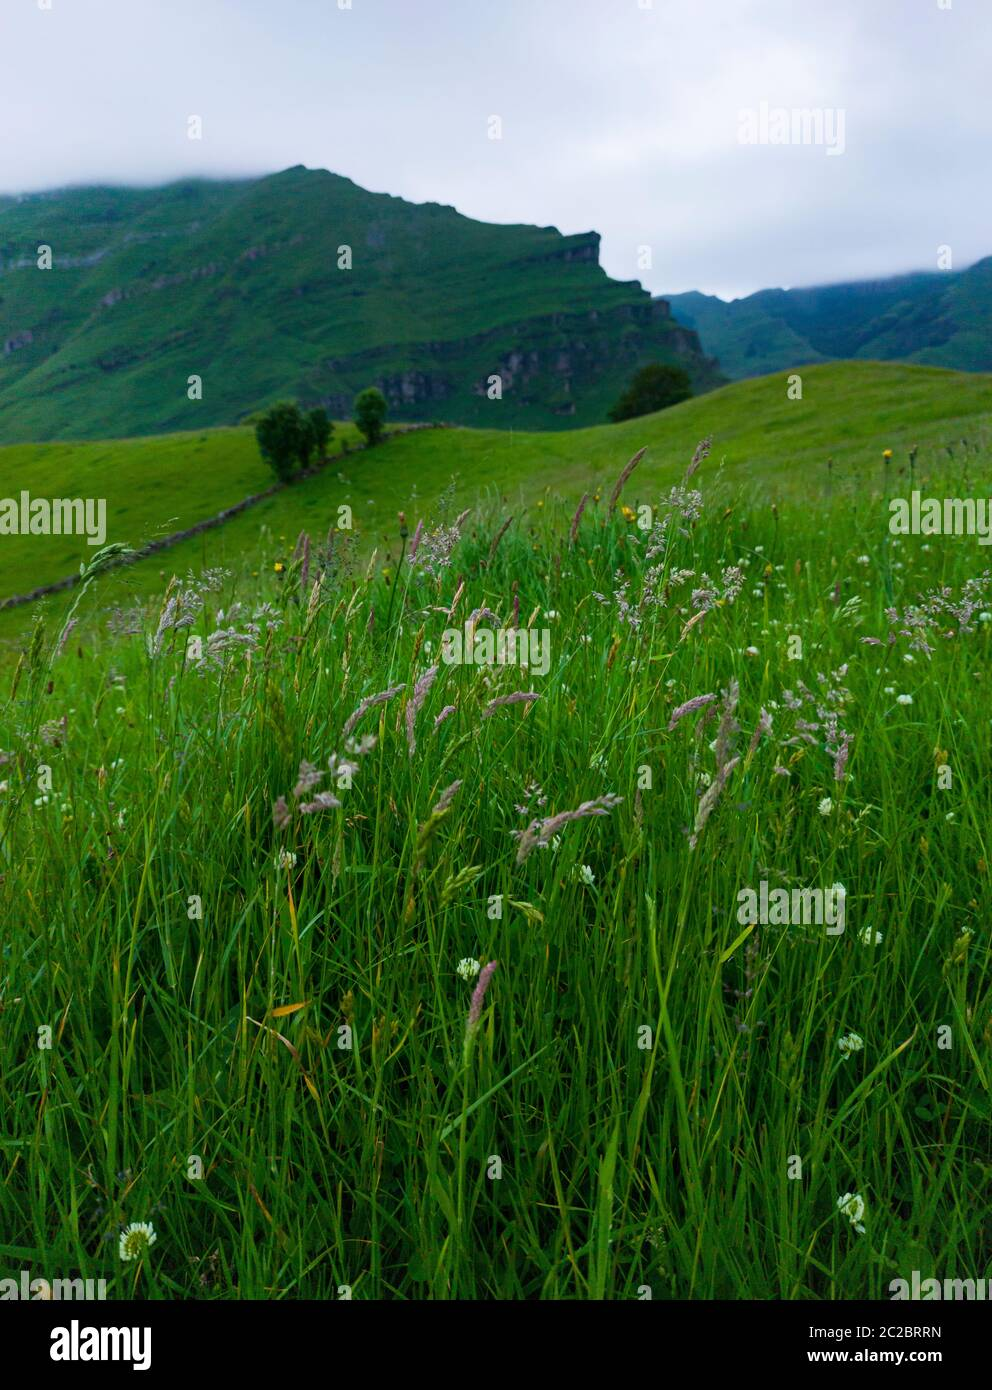 Spring landscape of pasiegas cabins and meadows in the Miera Valley in the Autonomous Community of Cantabria. Spain, Europe Stock Photo